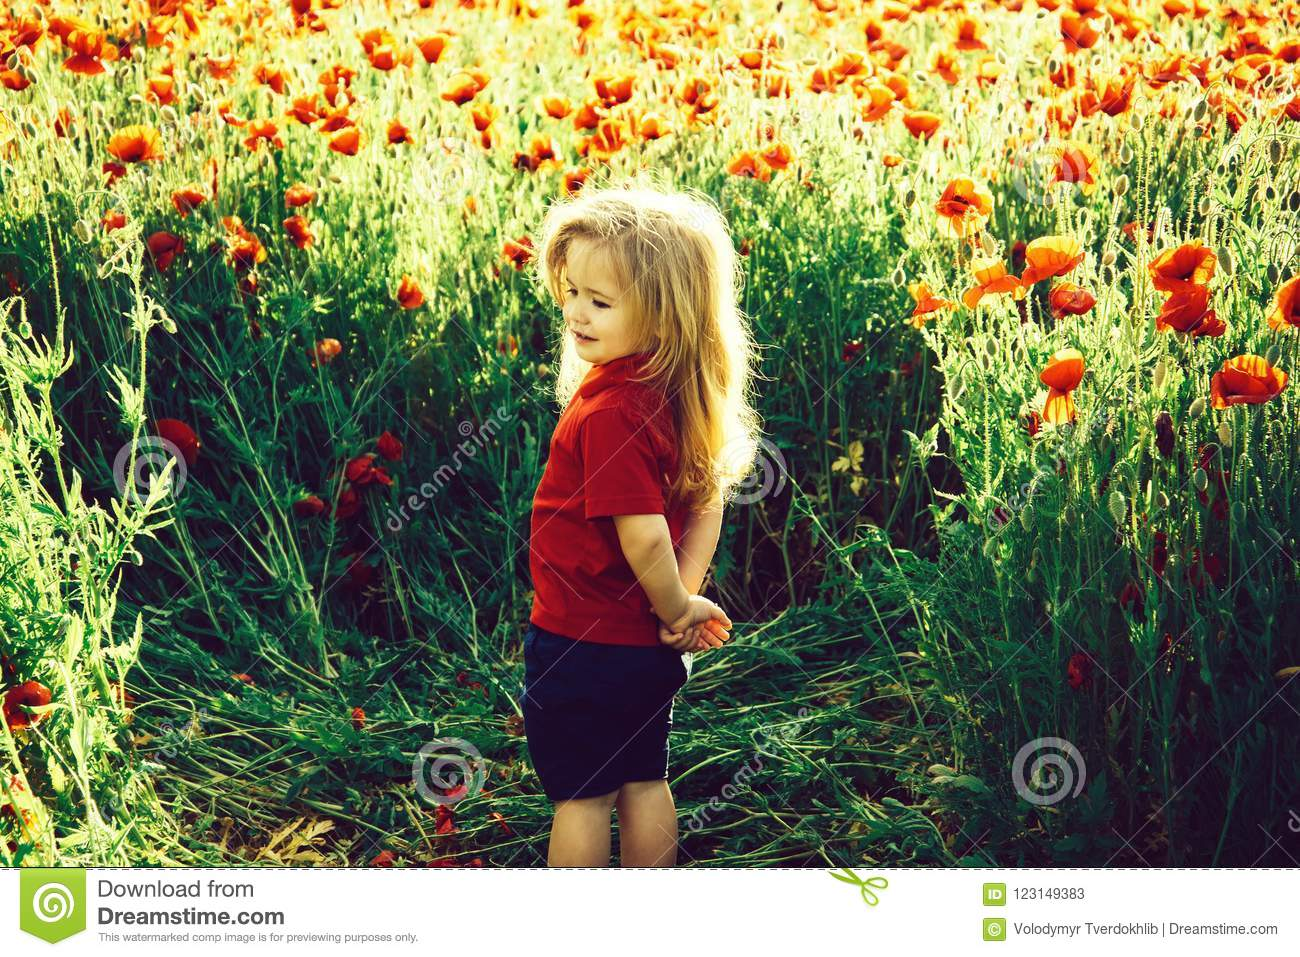 Child or smiling little boy with long blonde hair in red shirt in flower field of poppy with green stem on natural